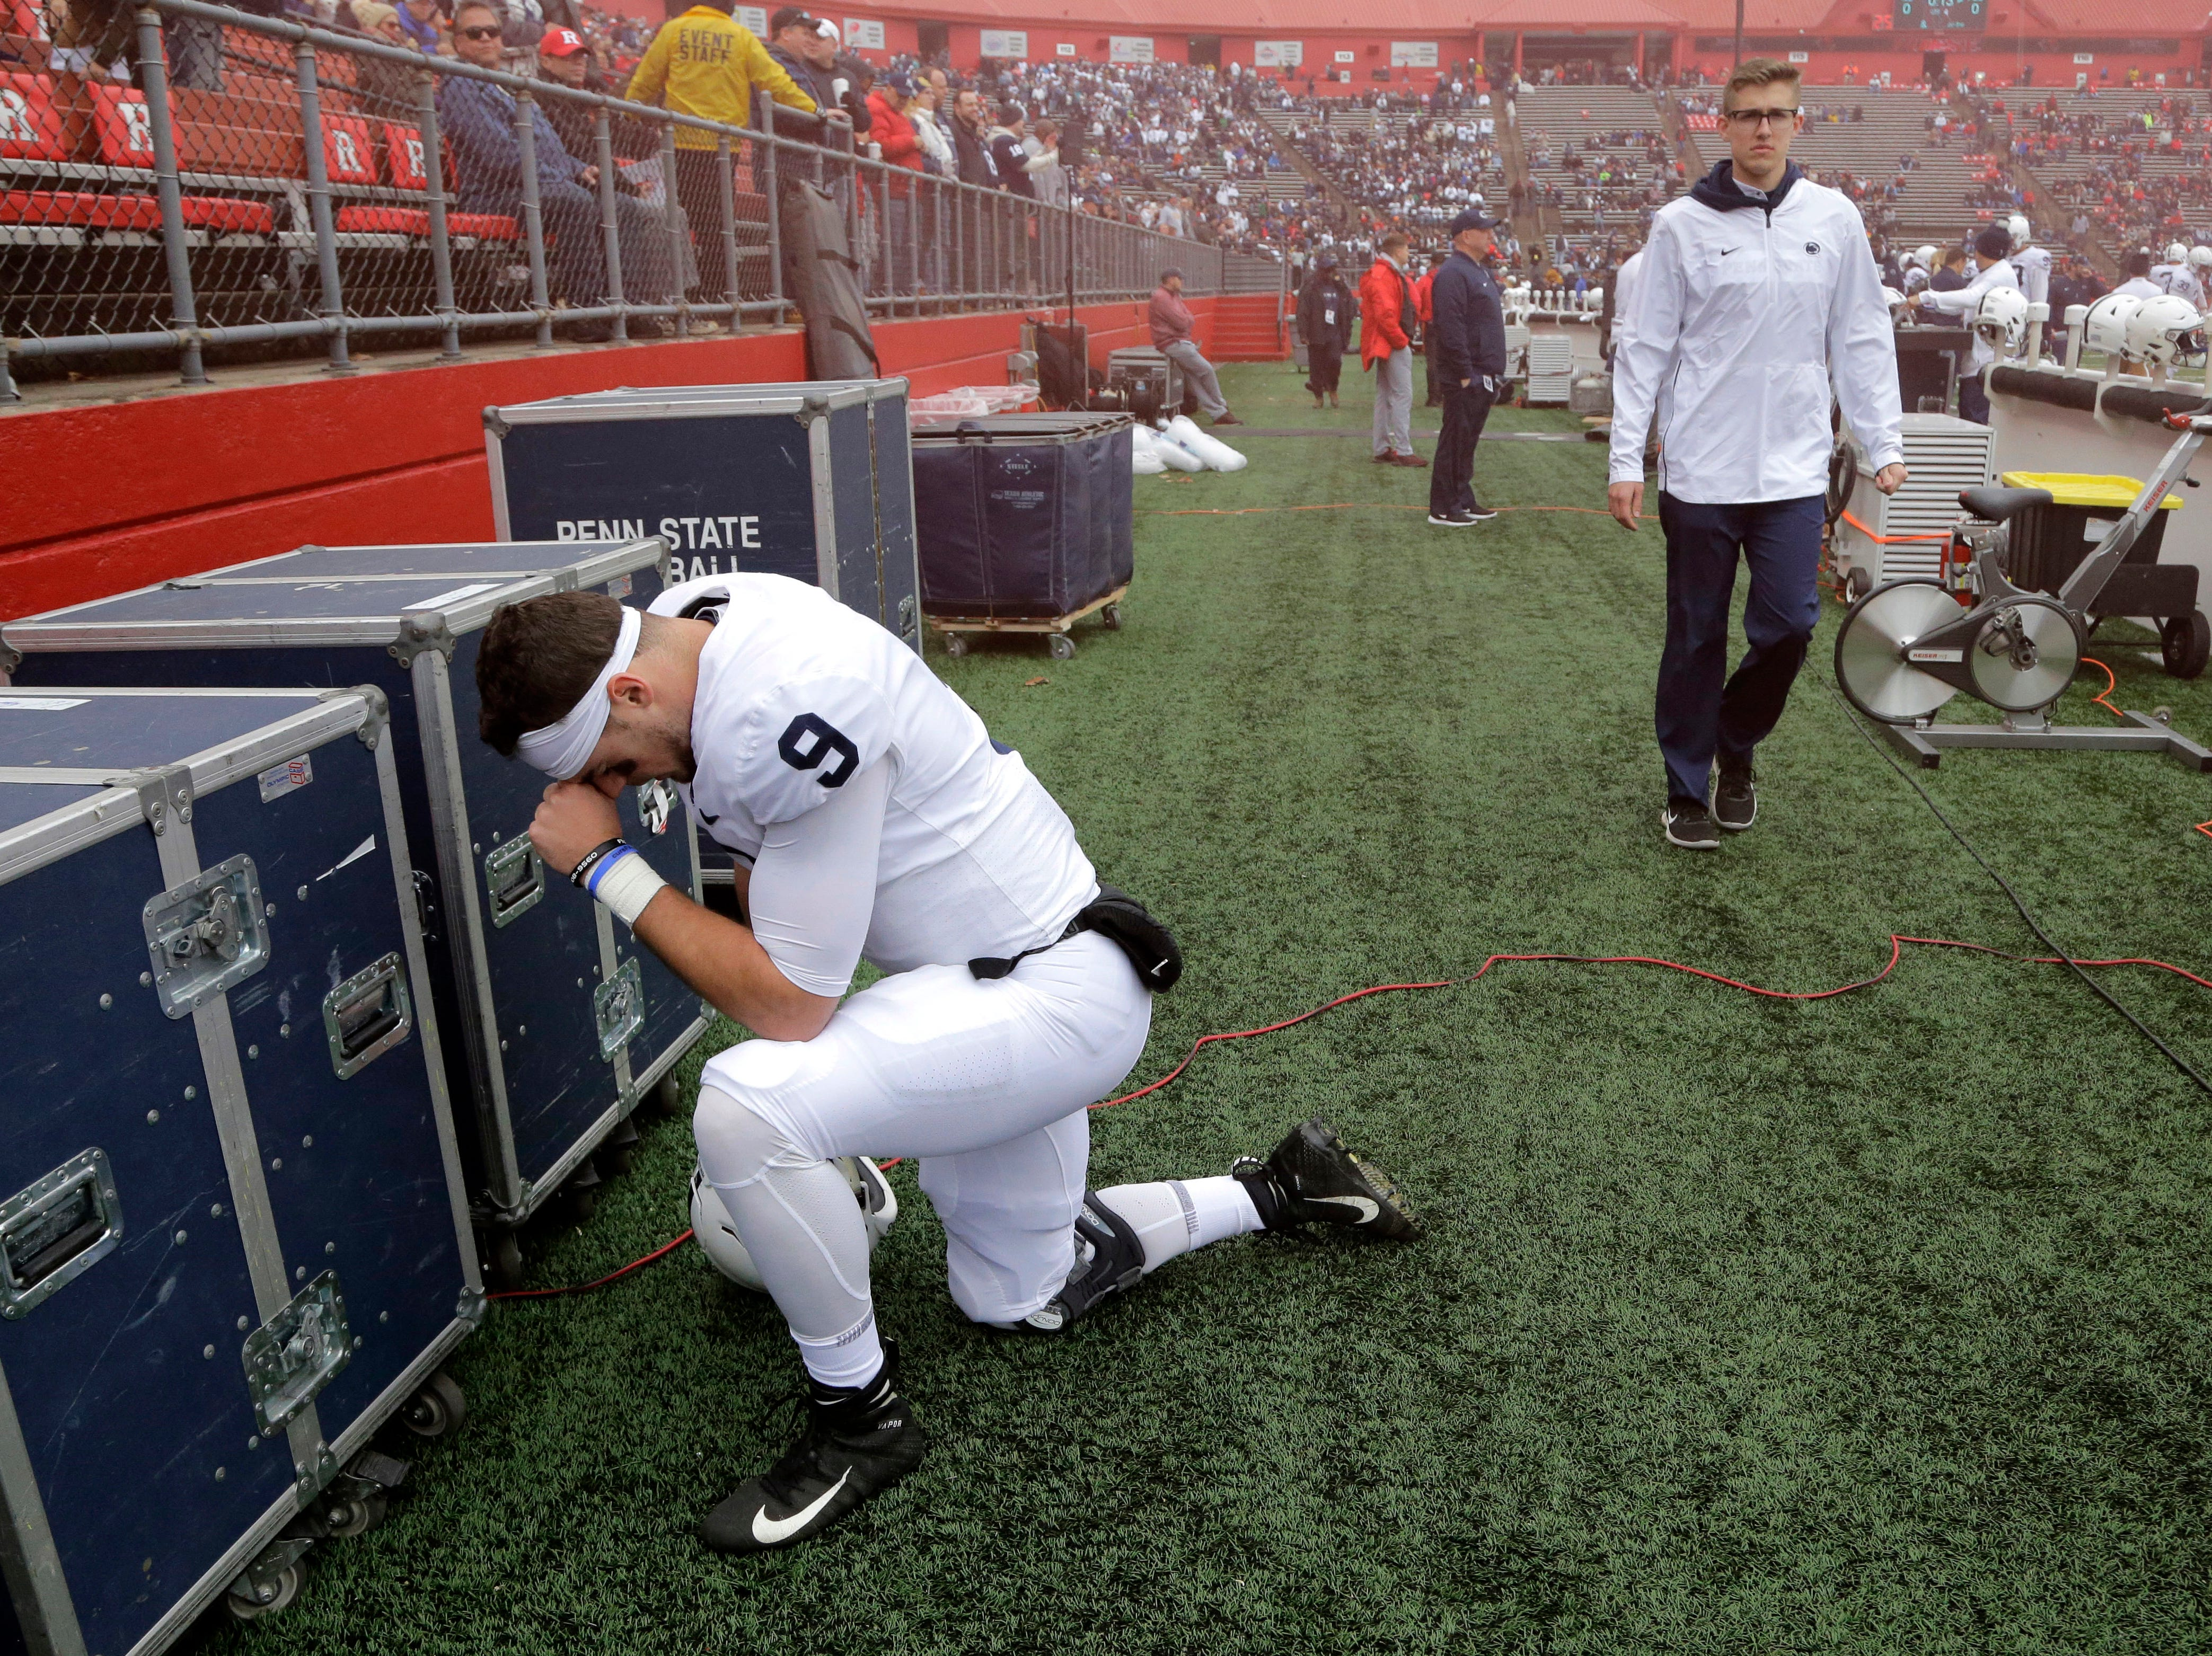 Penn State quarterback Trace McSorley takes a moment to himself prior to an NCAA college football game against Rutgers, Saturday, Nov. 17, 2018, in Piscataway, N.J. (AP Photo/Julio Cortez)